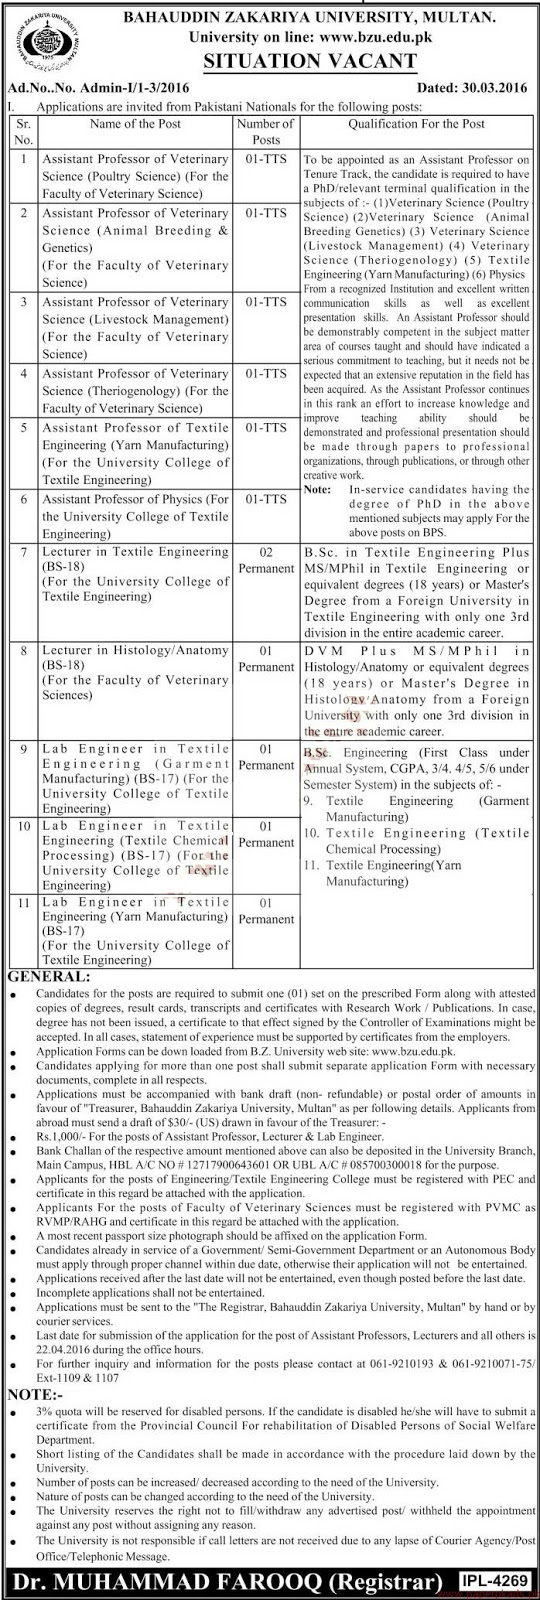 Teaching Faculty Jobs in BZU Multan Jobs